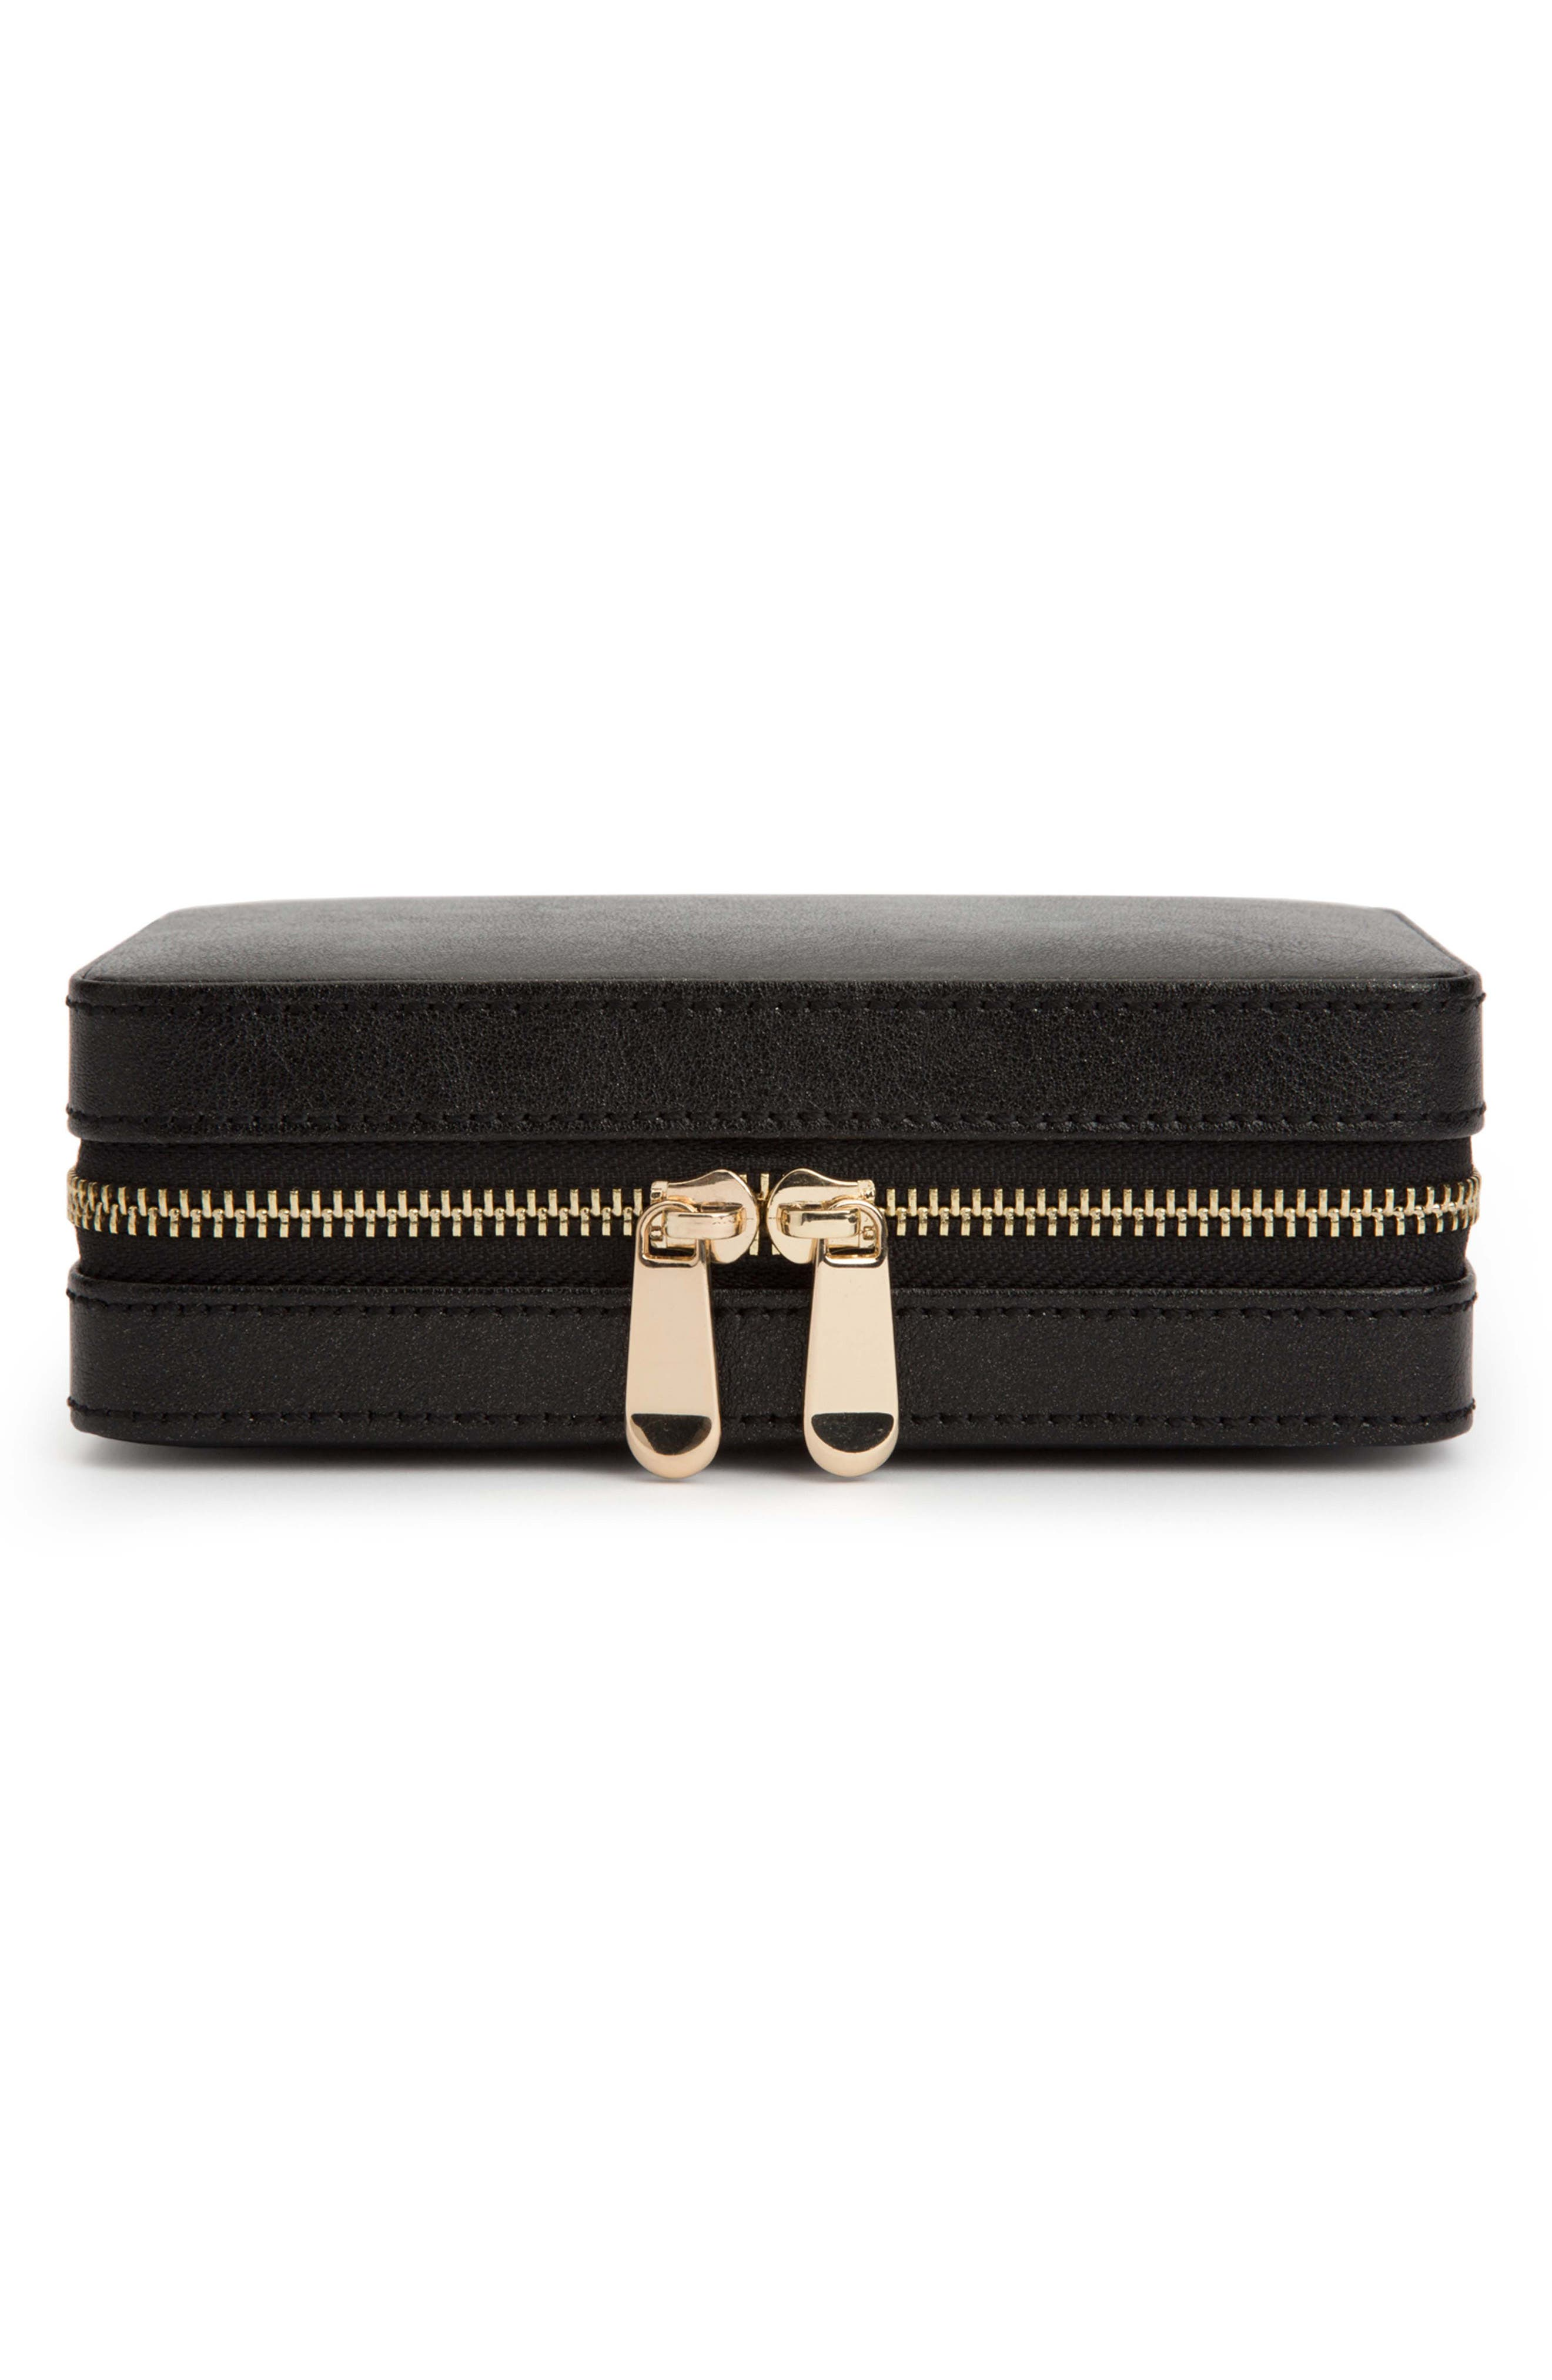 Palermo Zip Jewelry Case,                             Main thumbnail 1, color,                             BLACK